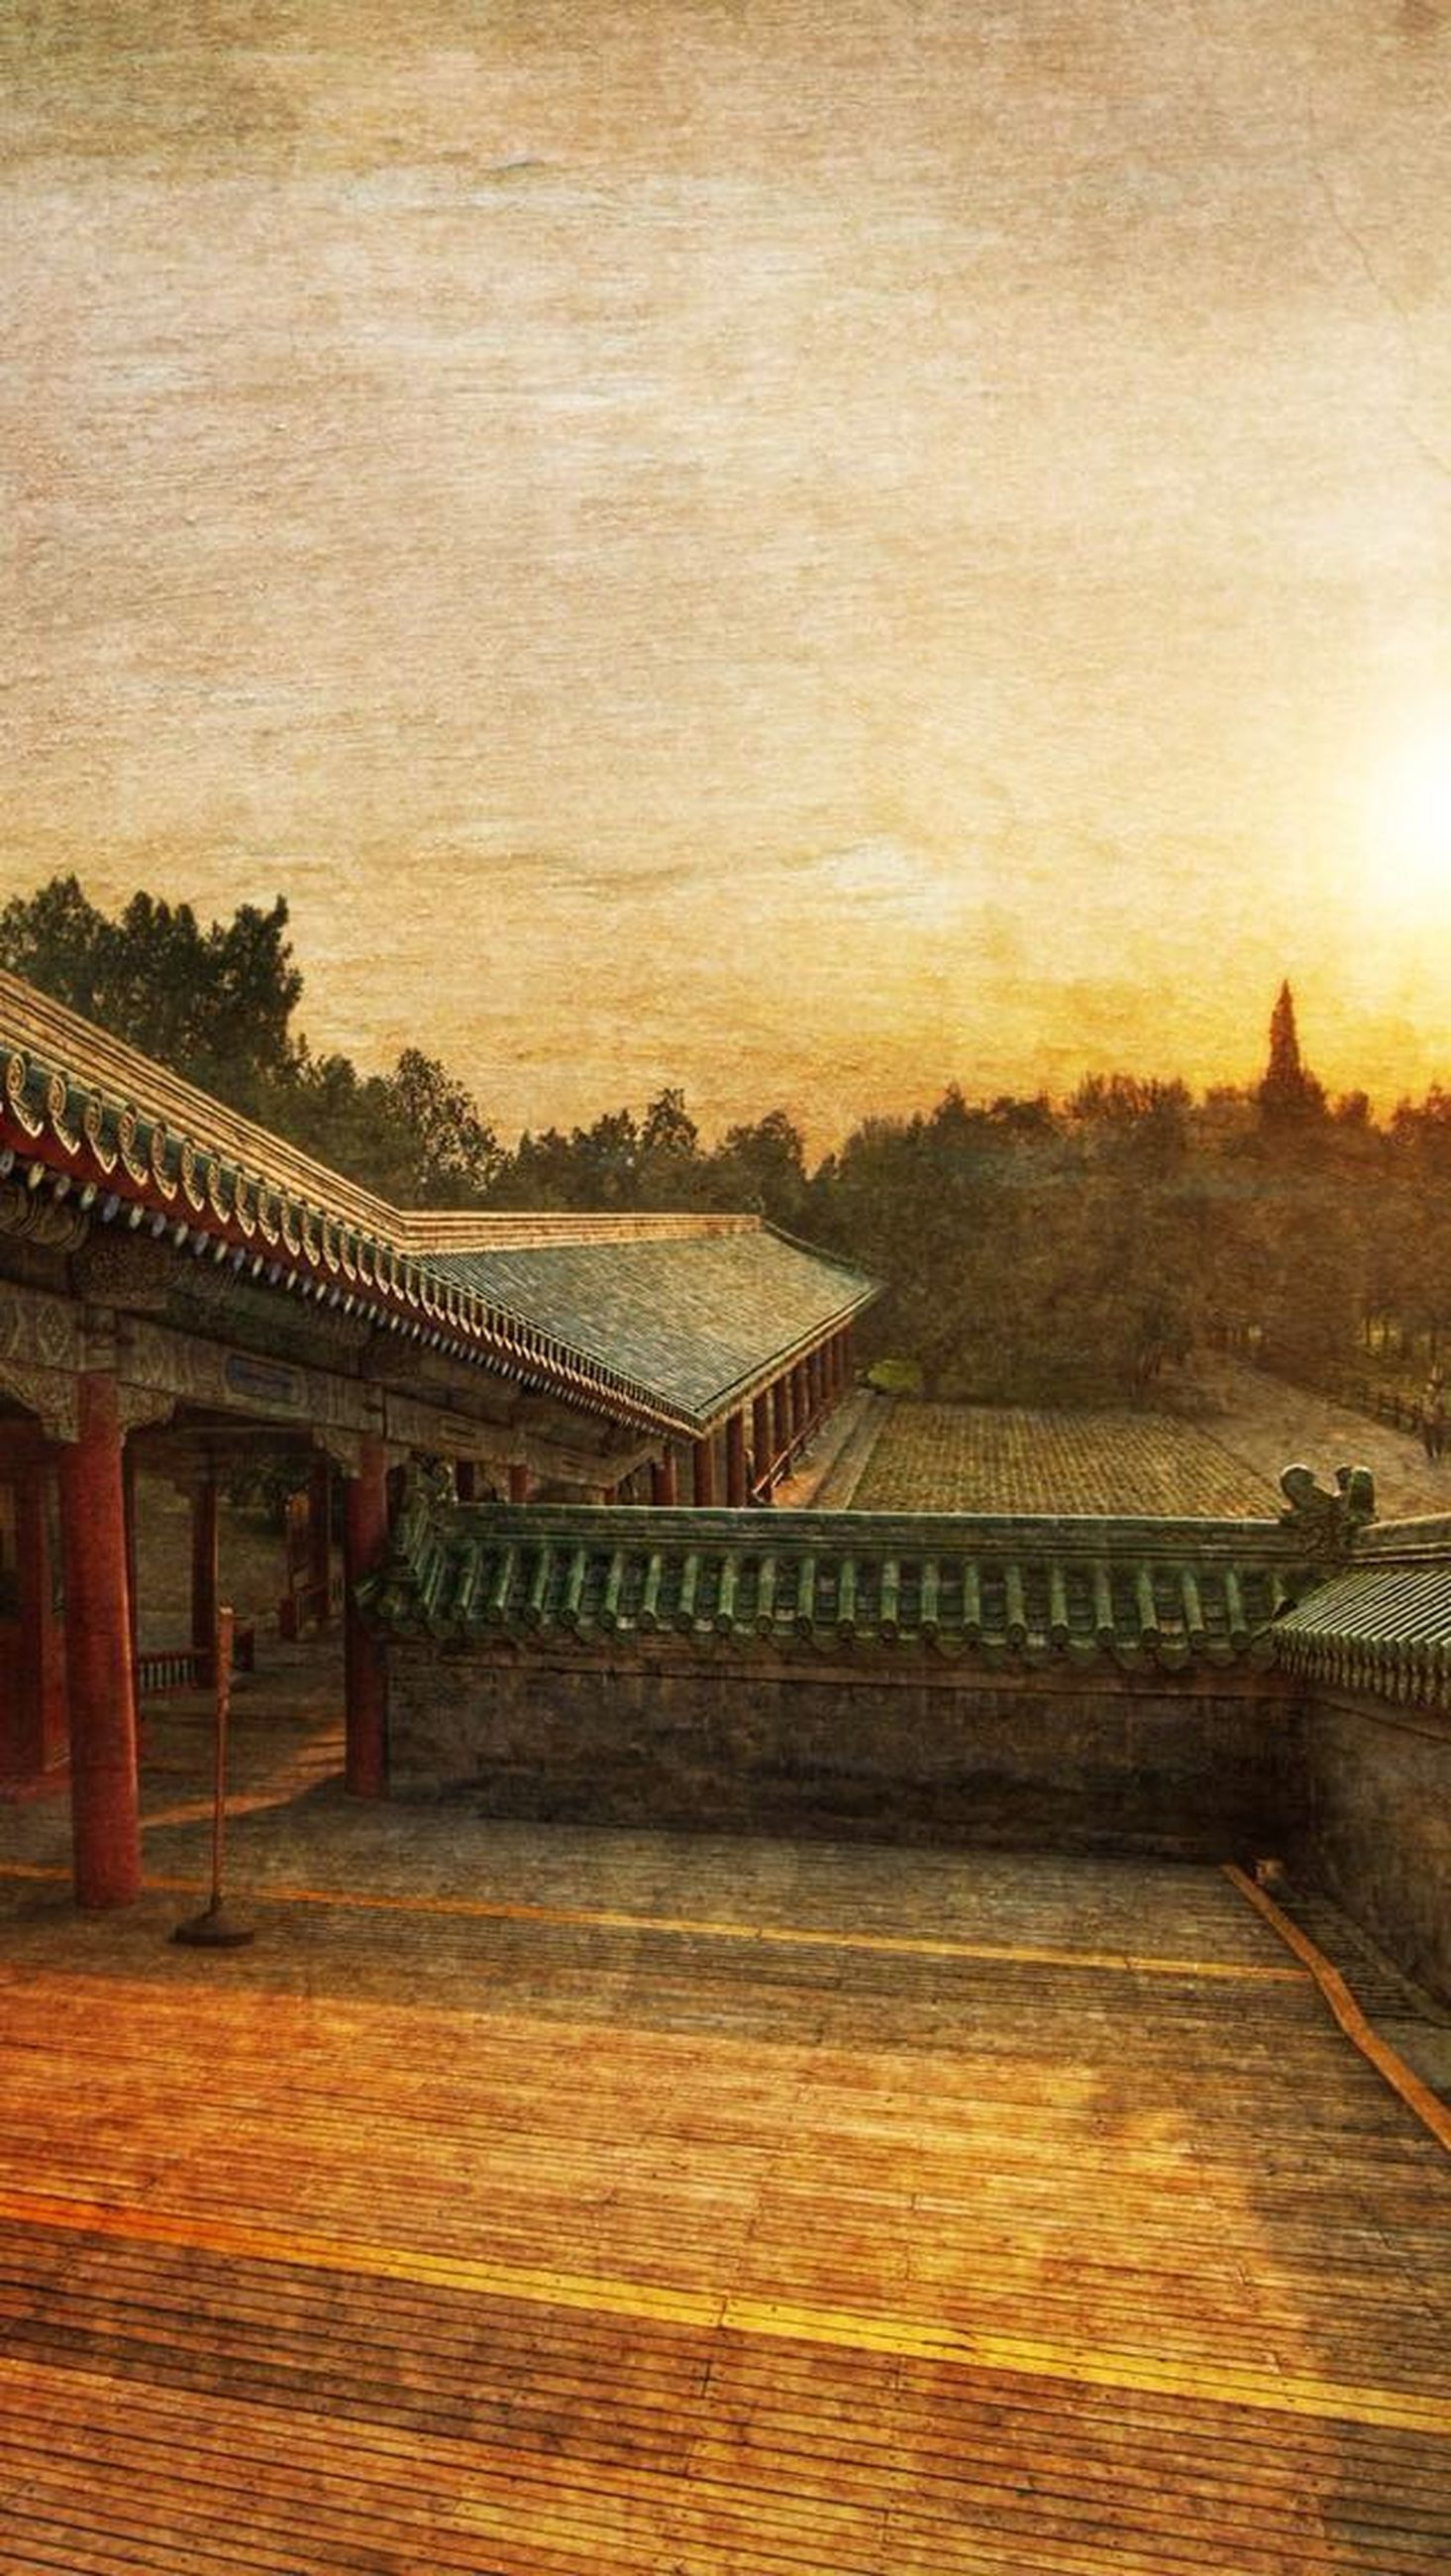 built structure, architecture, sunset, building exterior, sky, orange color, roof, no people, travel destinations, outdoors, cloud - sky, sunlight, tranquility, place of worship, religion, house, nature, railing, wood - material, spirituality